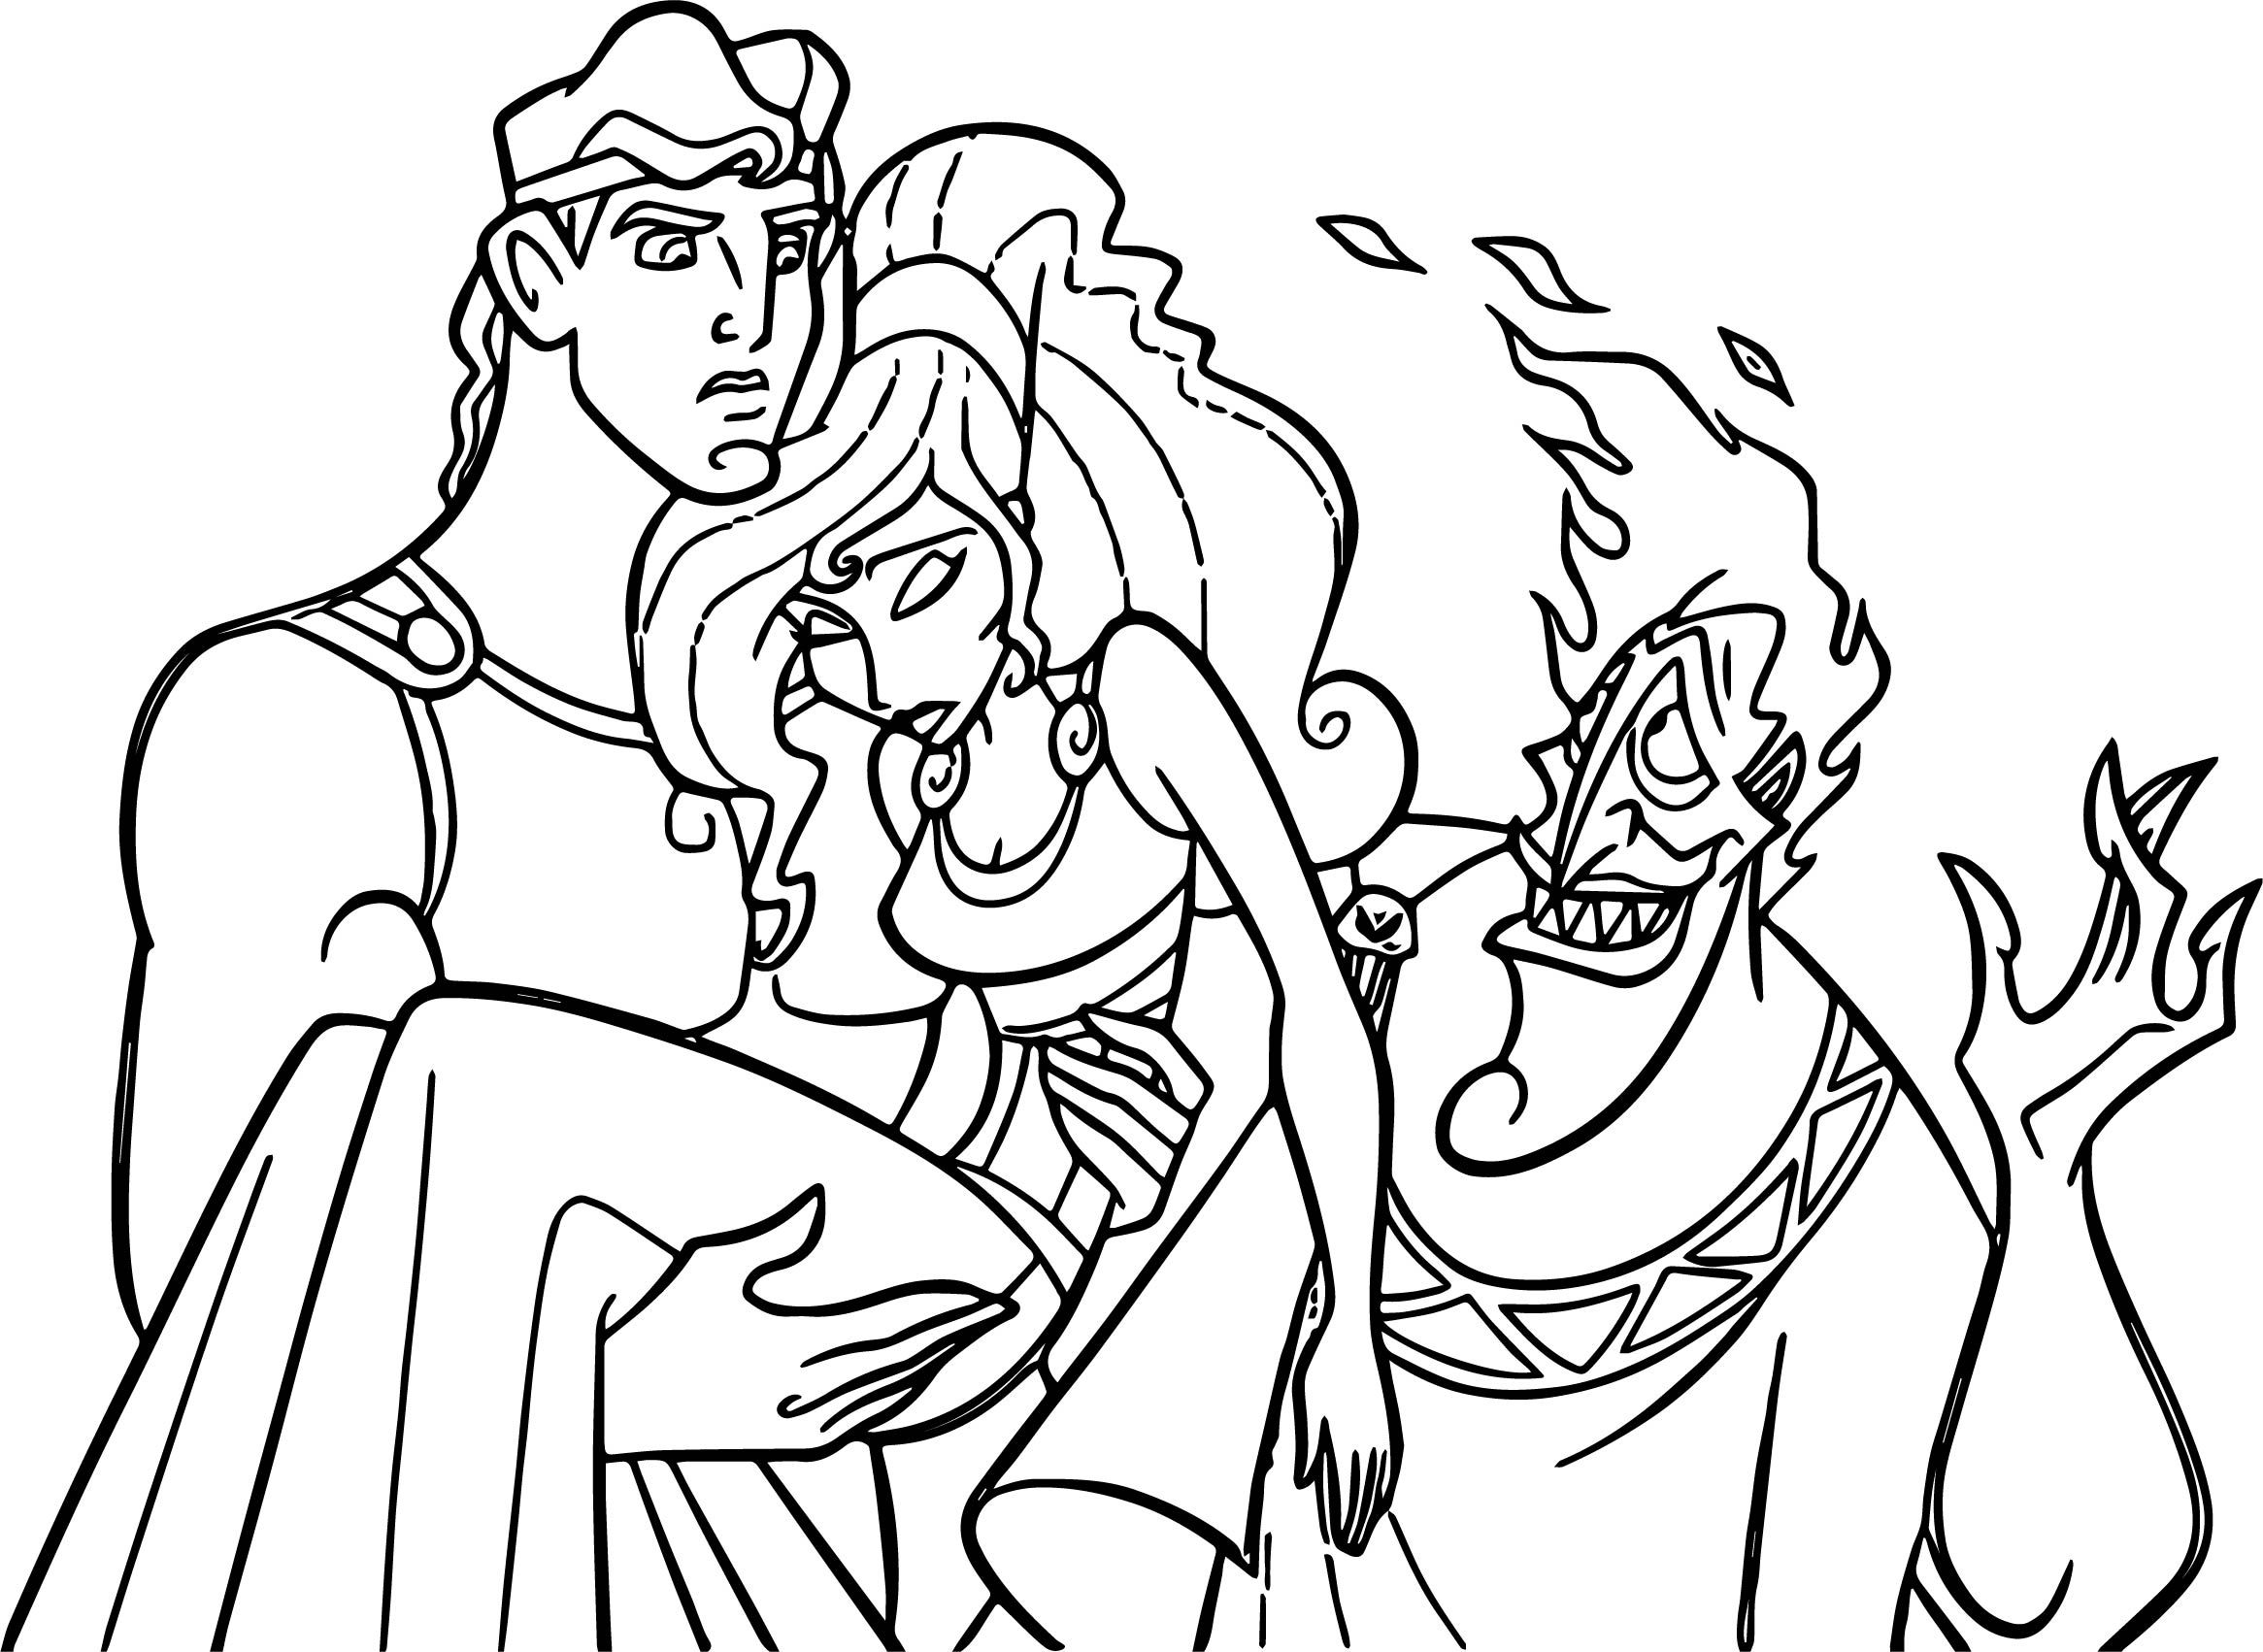 Hercules Meg Hades Coloring Pages Coloring Pages Staff Magic Animal Drawings